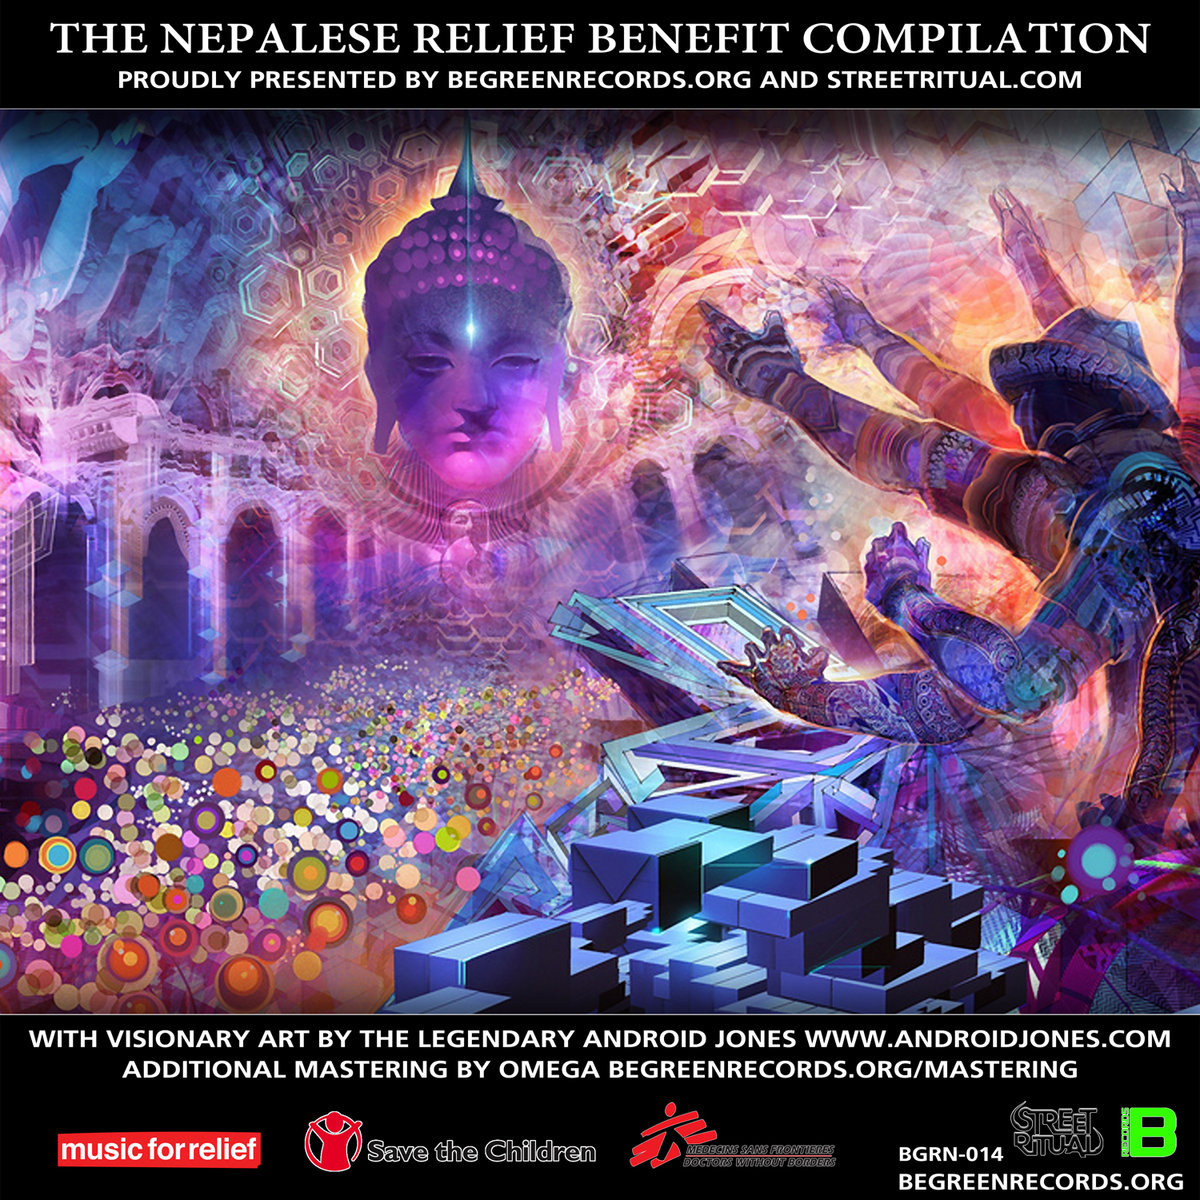 Tripmendous - Defractalize @ 'Various Artists - The Nepalese Relief Benefit Compilation' album (bass, electronic)